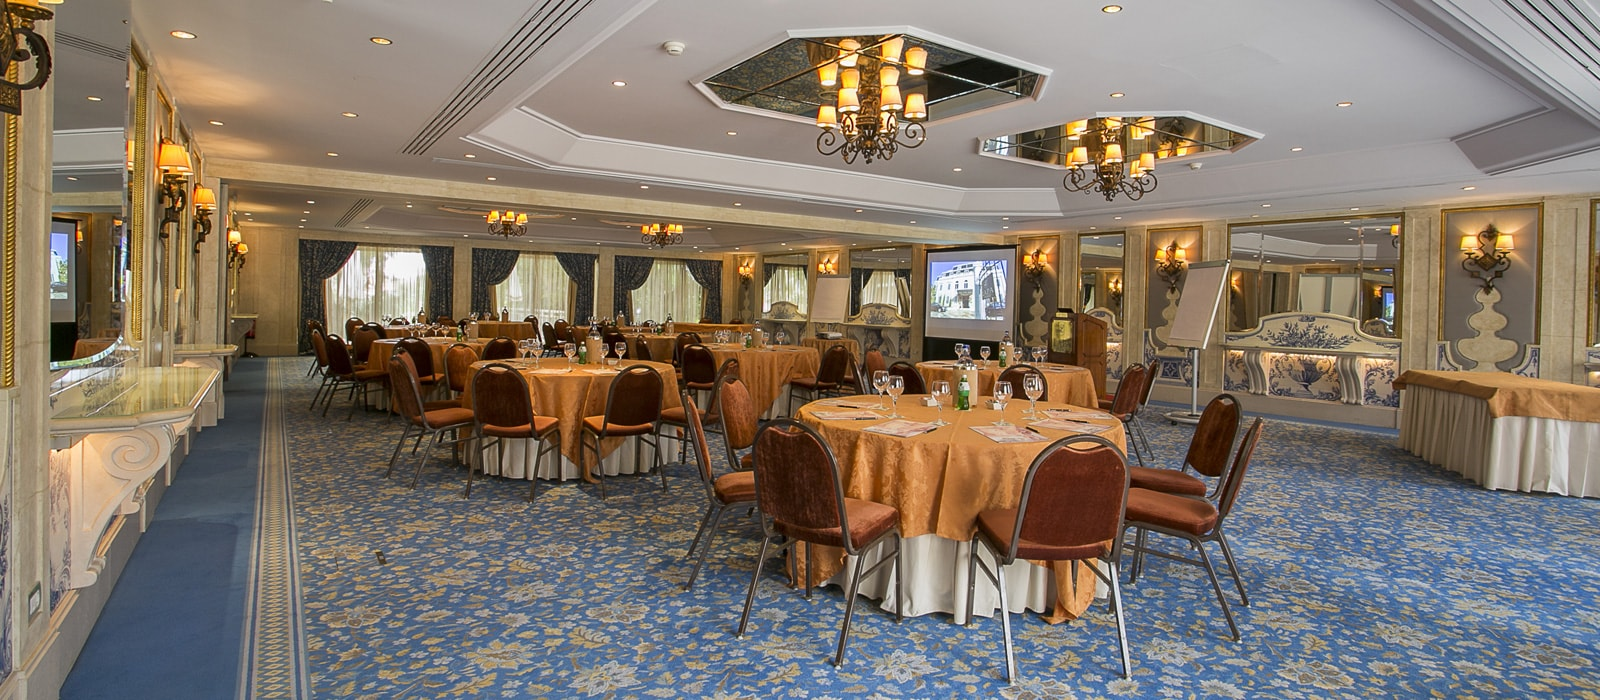 Meetings & Events Olissippo Lapa Palace